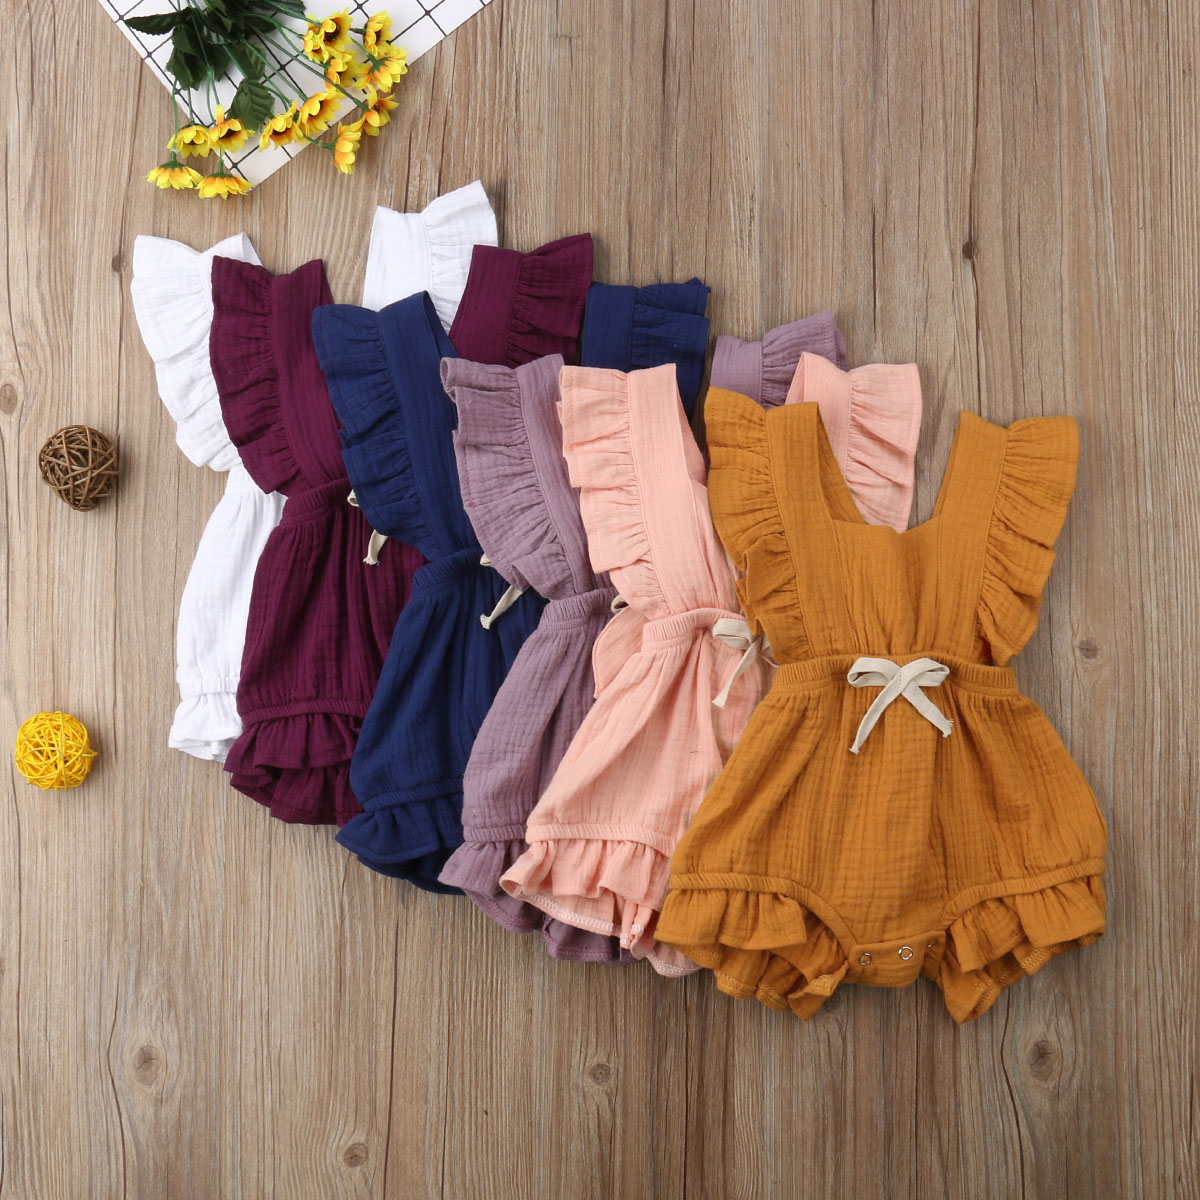 Newborn Baby Girl Summer Ruffle Cotton Romper Jumpsuit Outfits Clothes Sunsuit 0-24M Solid Color Outfits